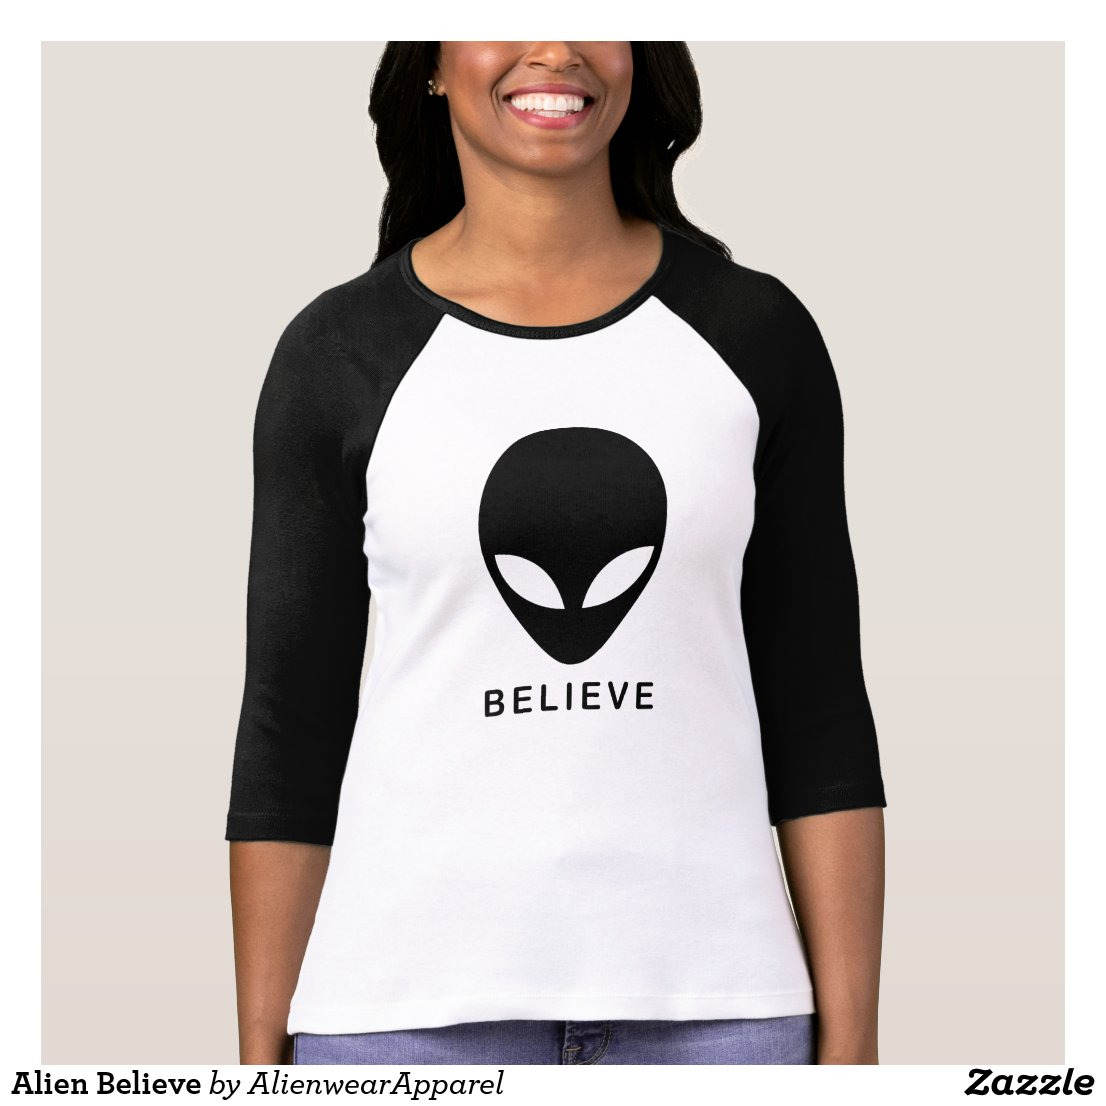 Alien Believe T-Shirt